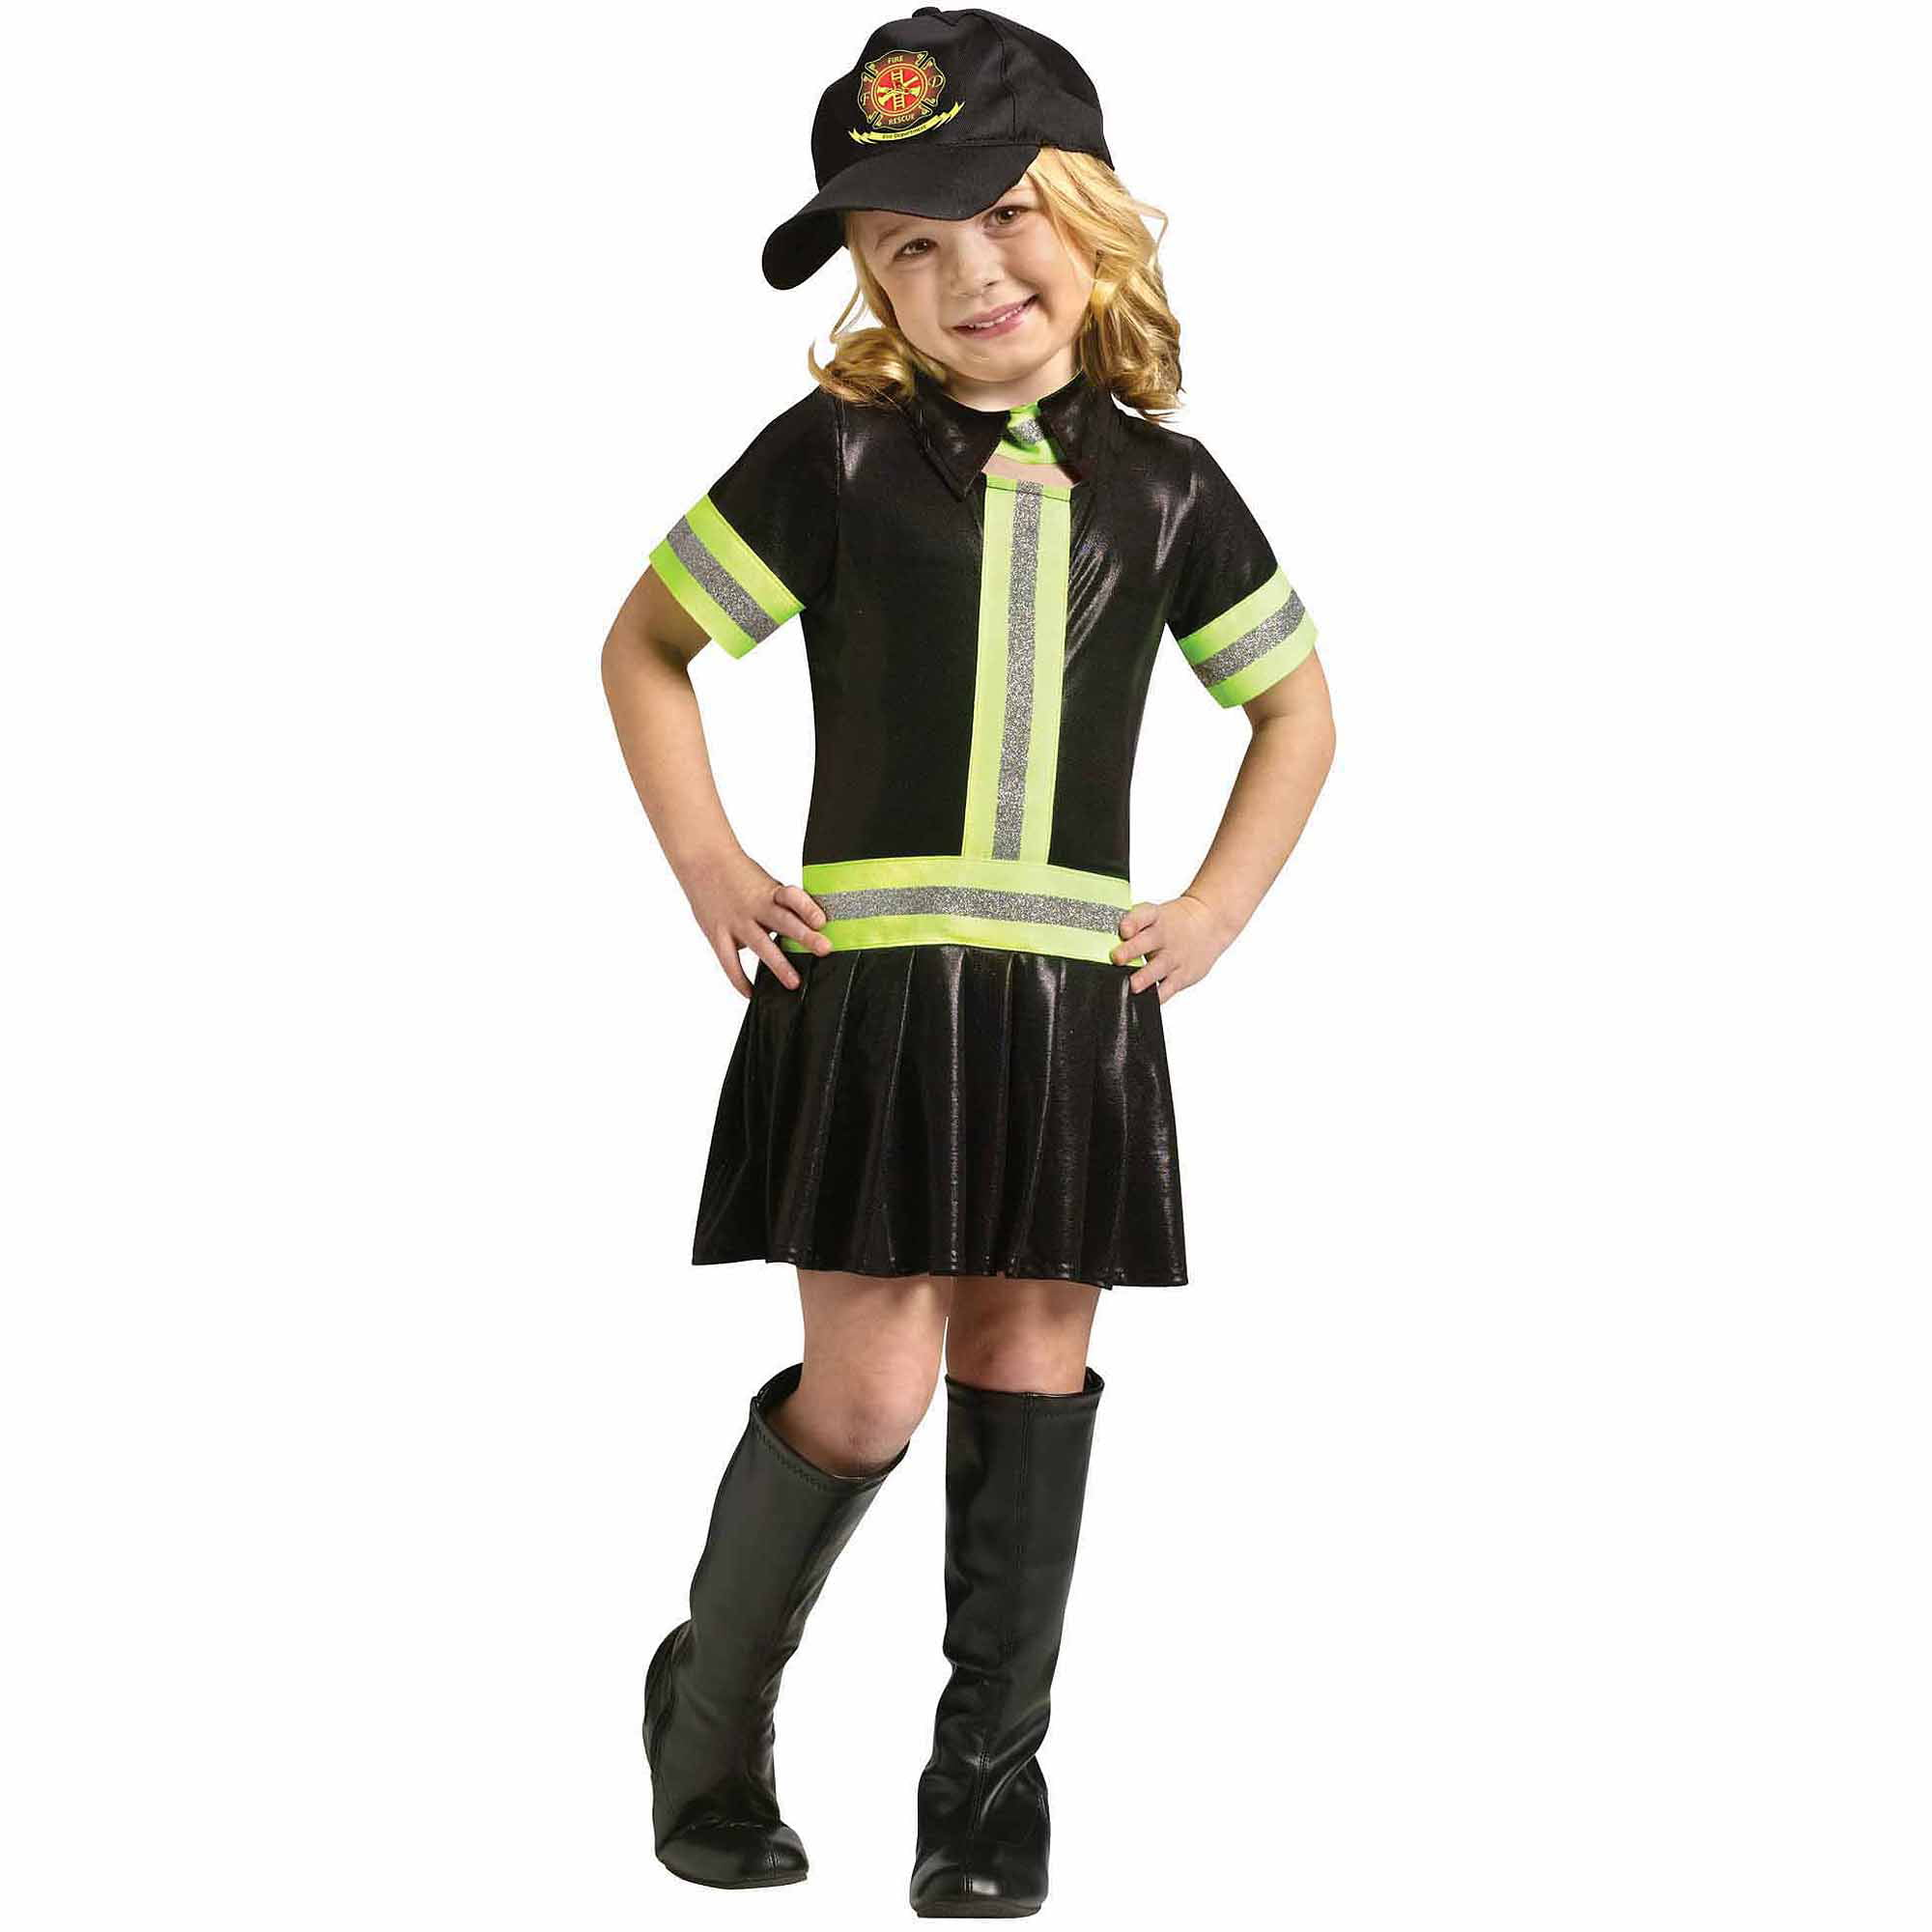 fire girl child halloween costume walmartcom - Fire Girl Halloween Costume